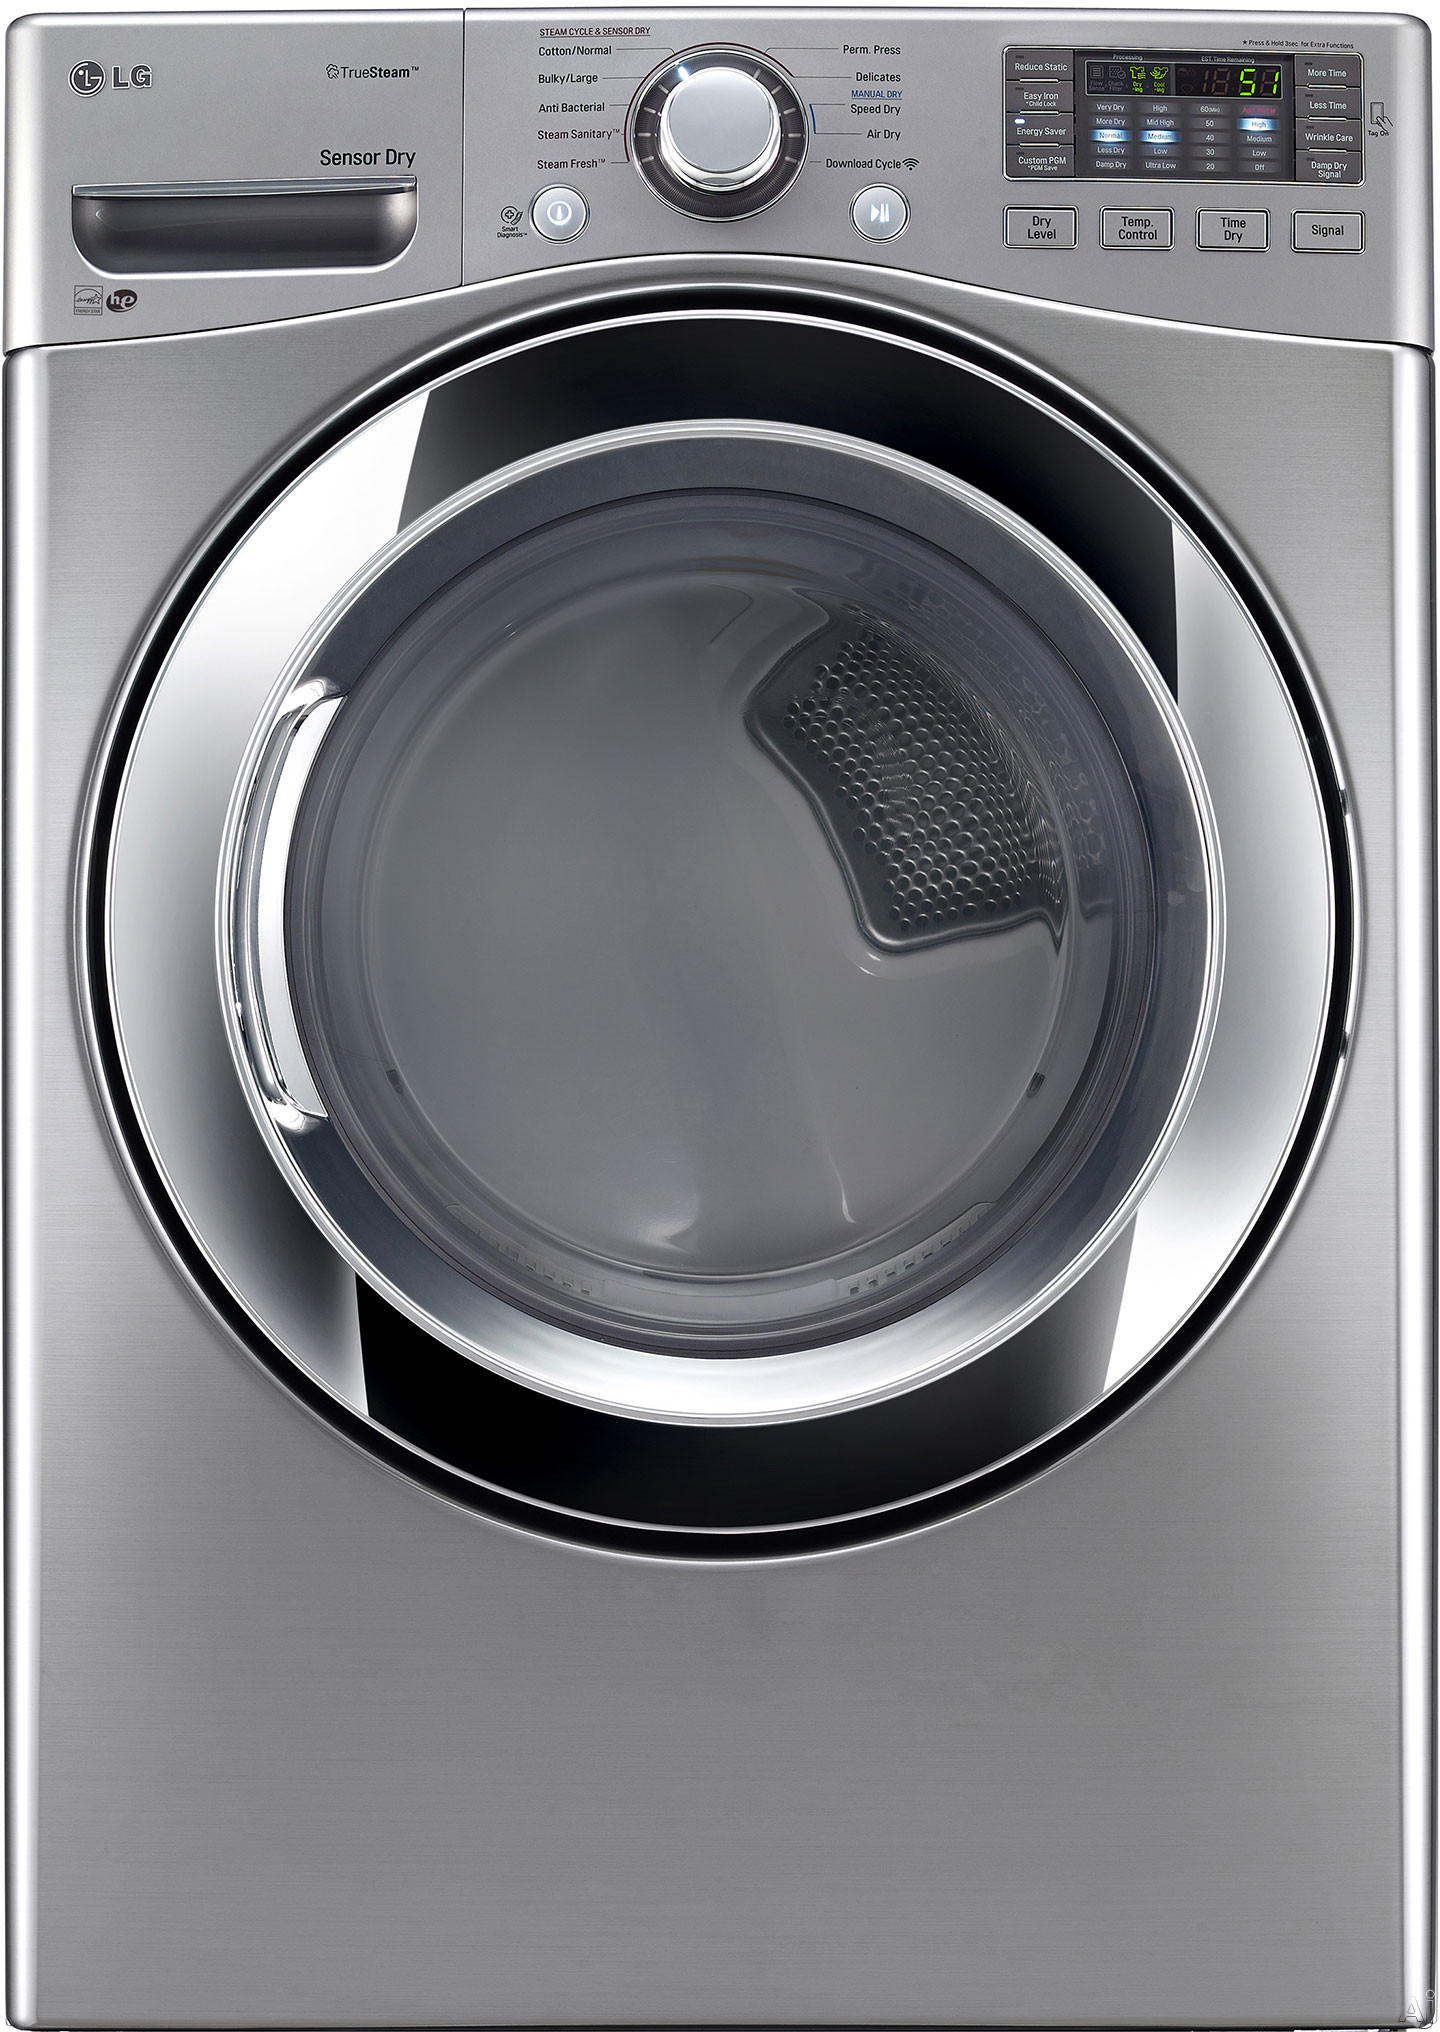 LG Laundry,LG Dryers,LG Gas Dryers